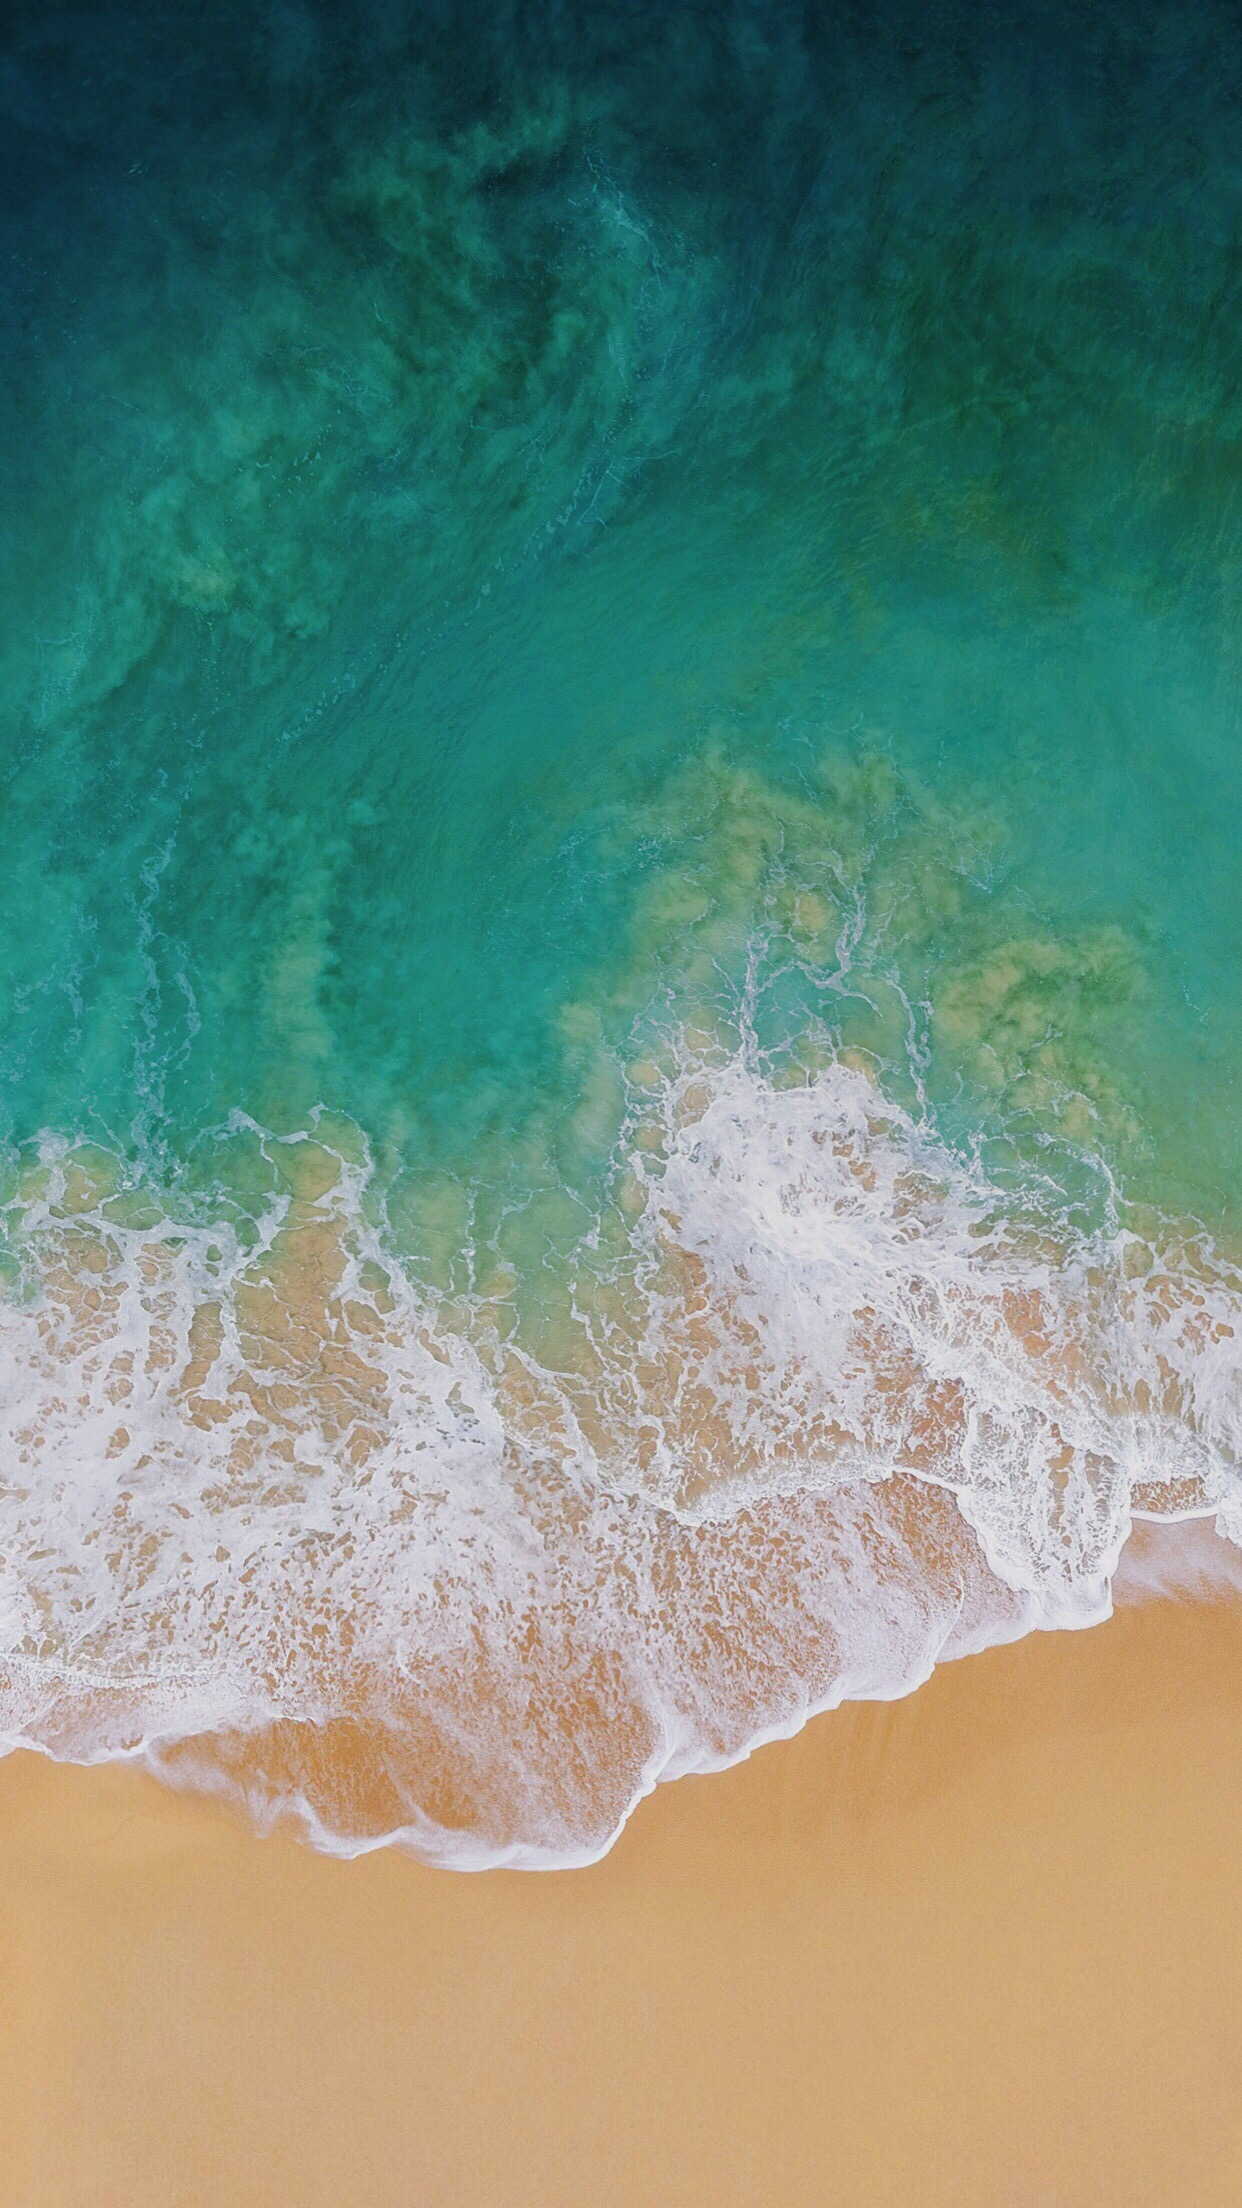 IOS 11 Official iPhone wallpaper